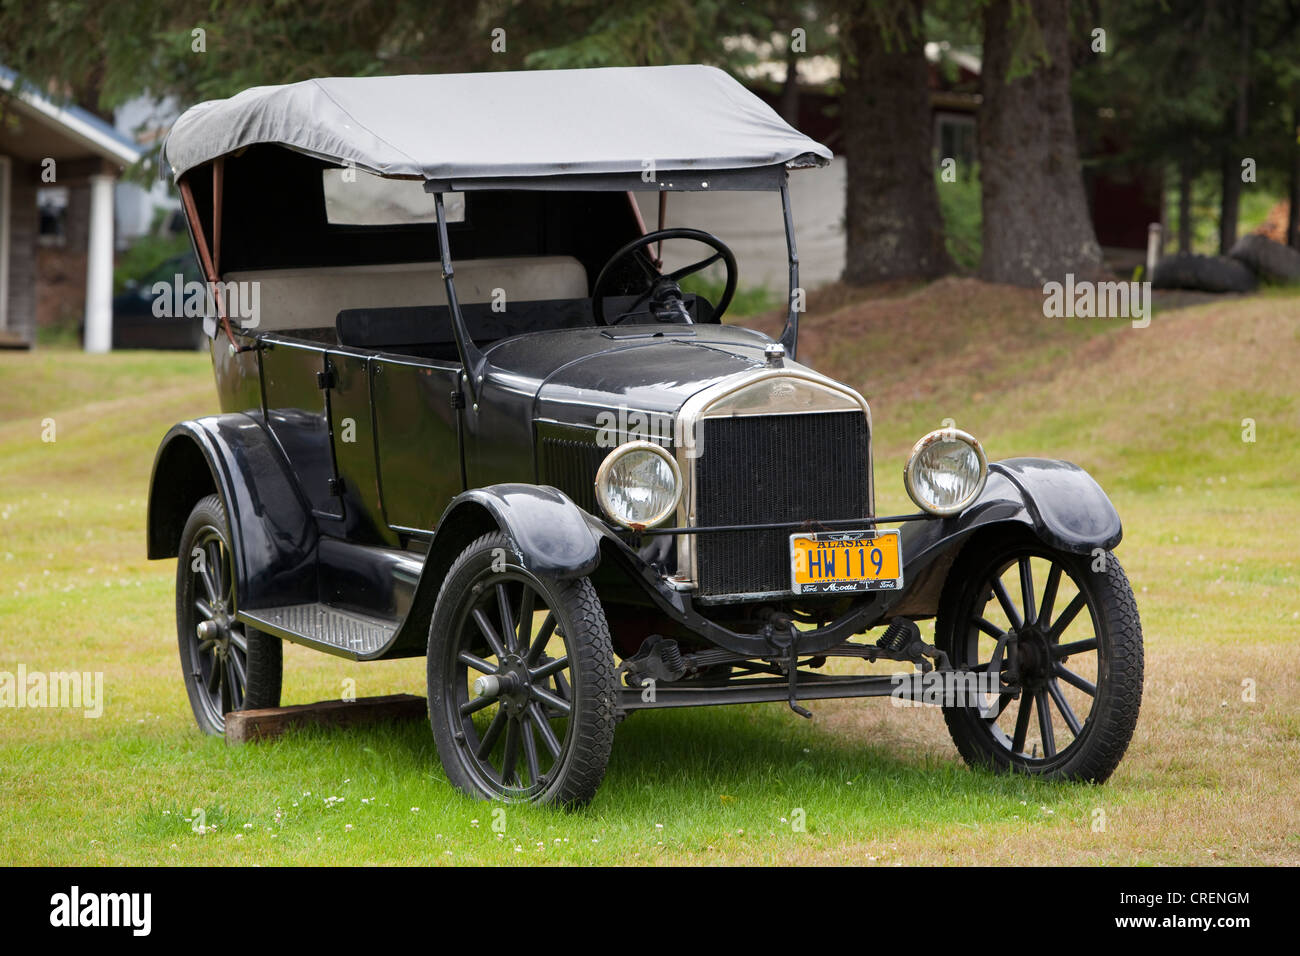 historische autos automobil ford model t tin lizzie. Black Bedroom Furniture Sets. Home Design Ideas